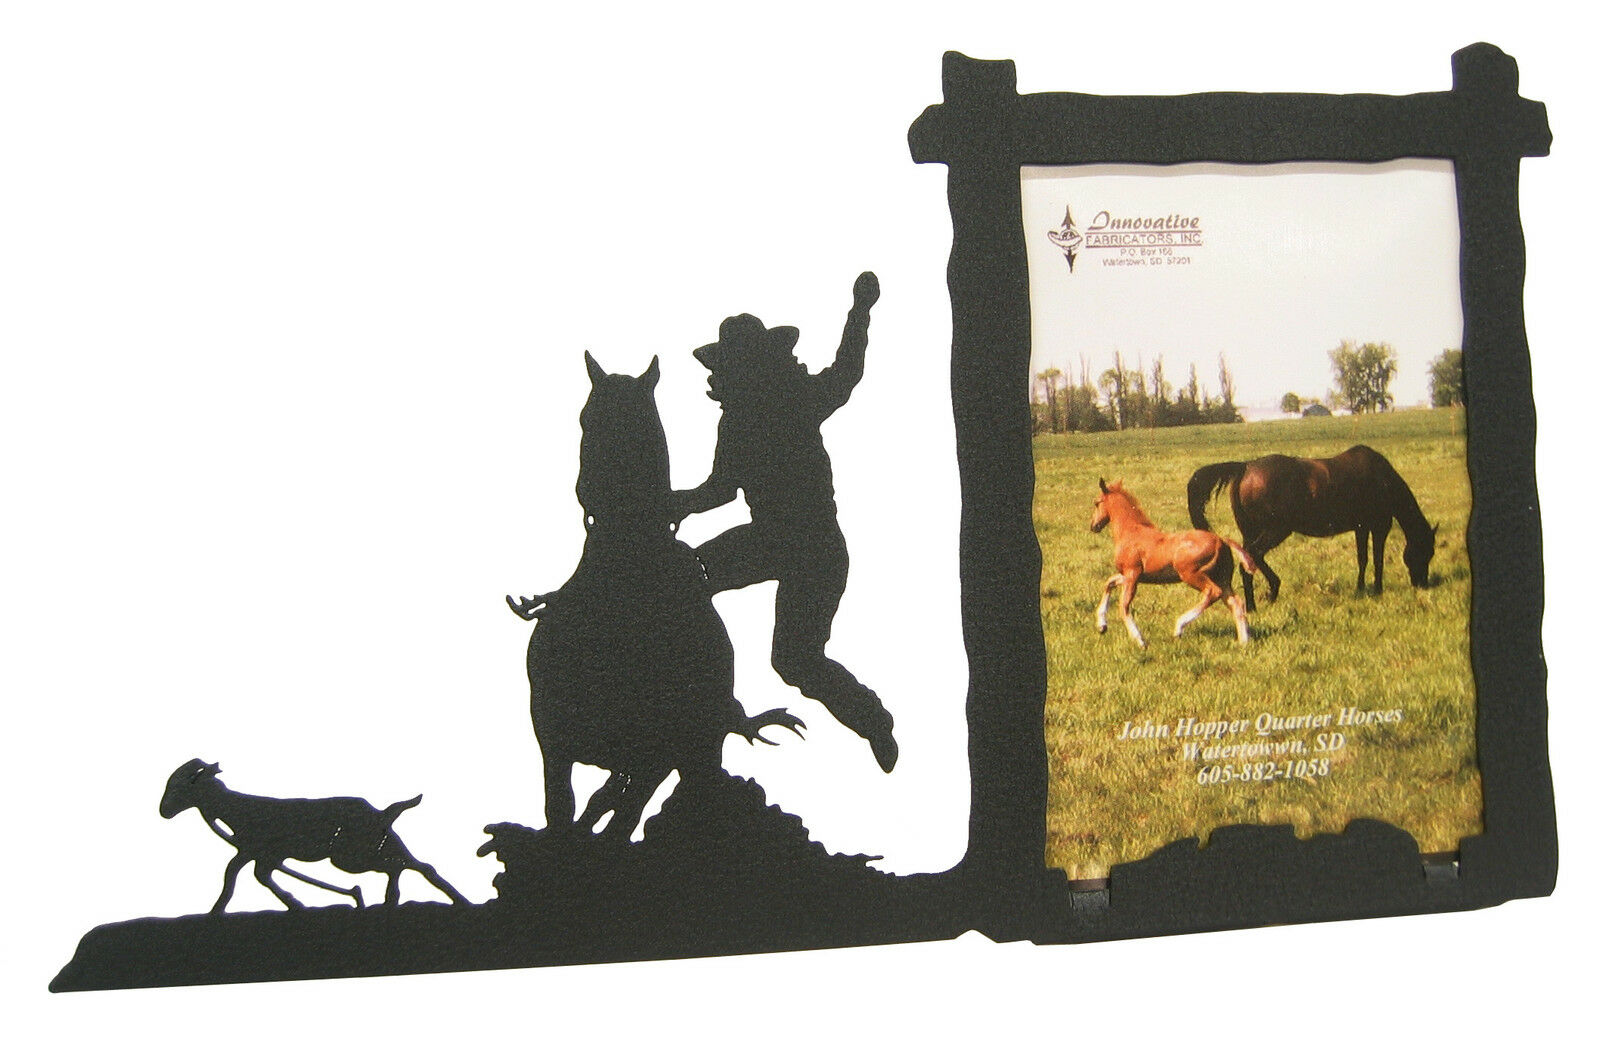 Goat Undressing Tying Roping Rodeo Picture Frame 3.5x5 - 3x5 V